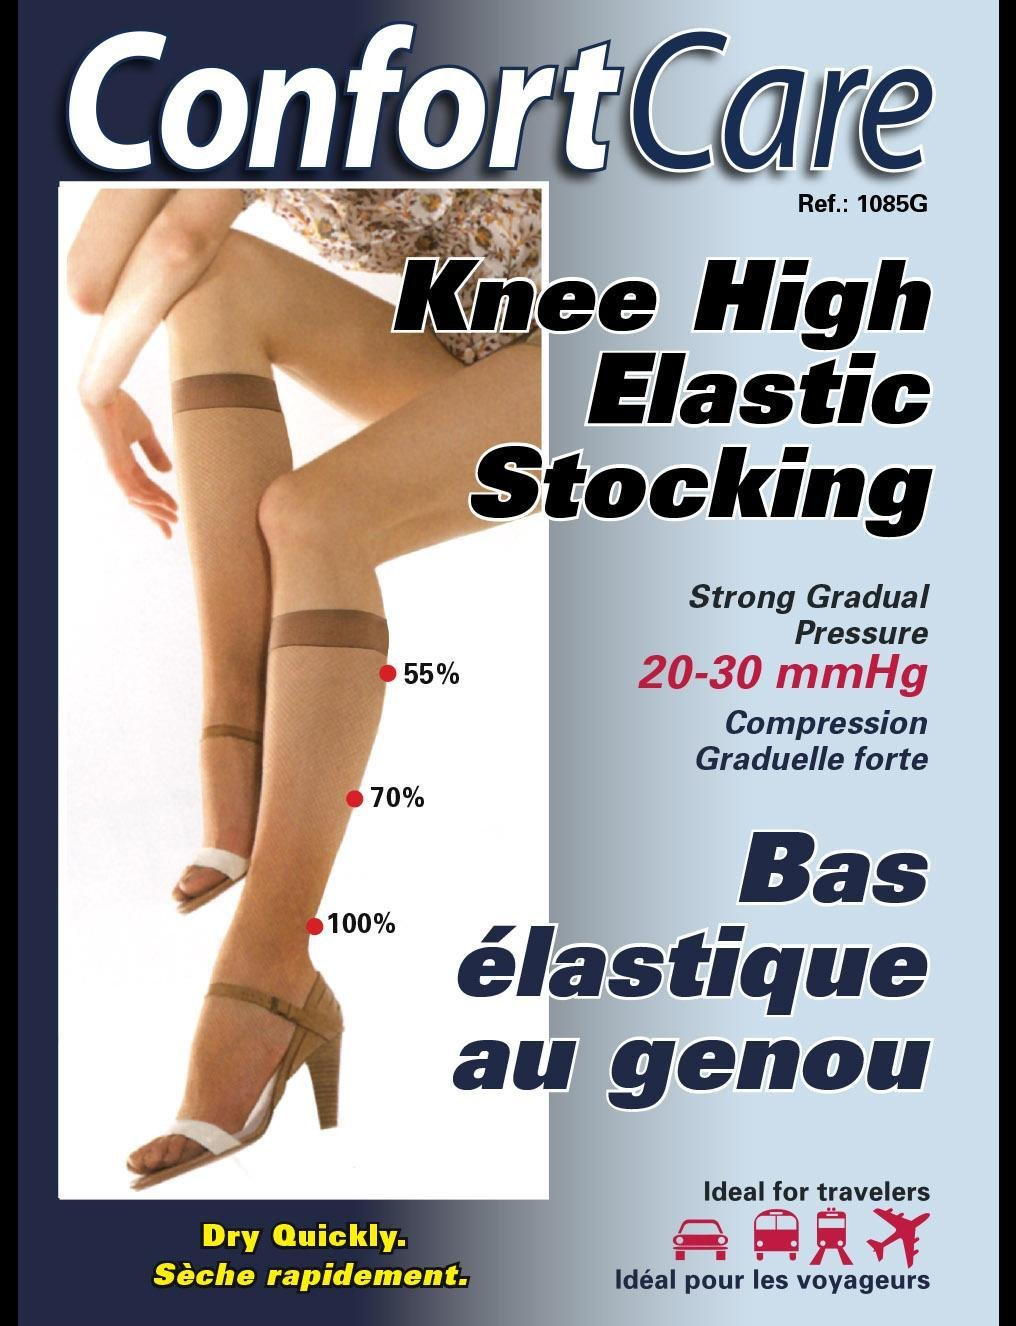 Spécial 1085g 2PRS. X $80.00 Bas Élastique au Genou compression forte(20-30mmHg) High compression Elastic Stoking.